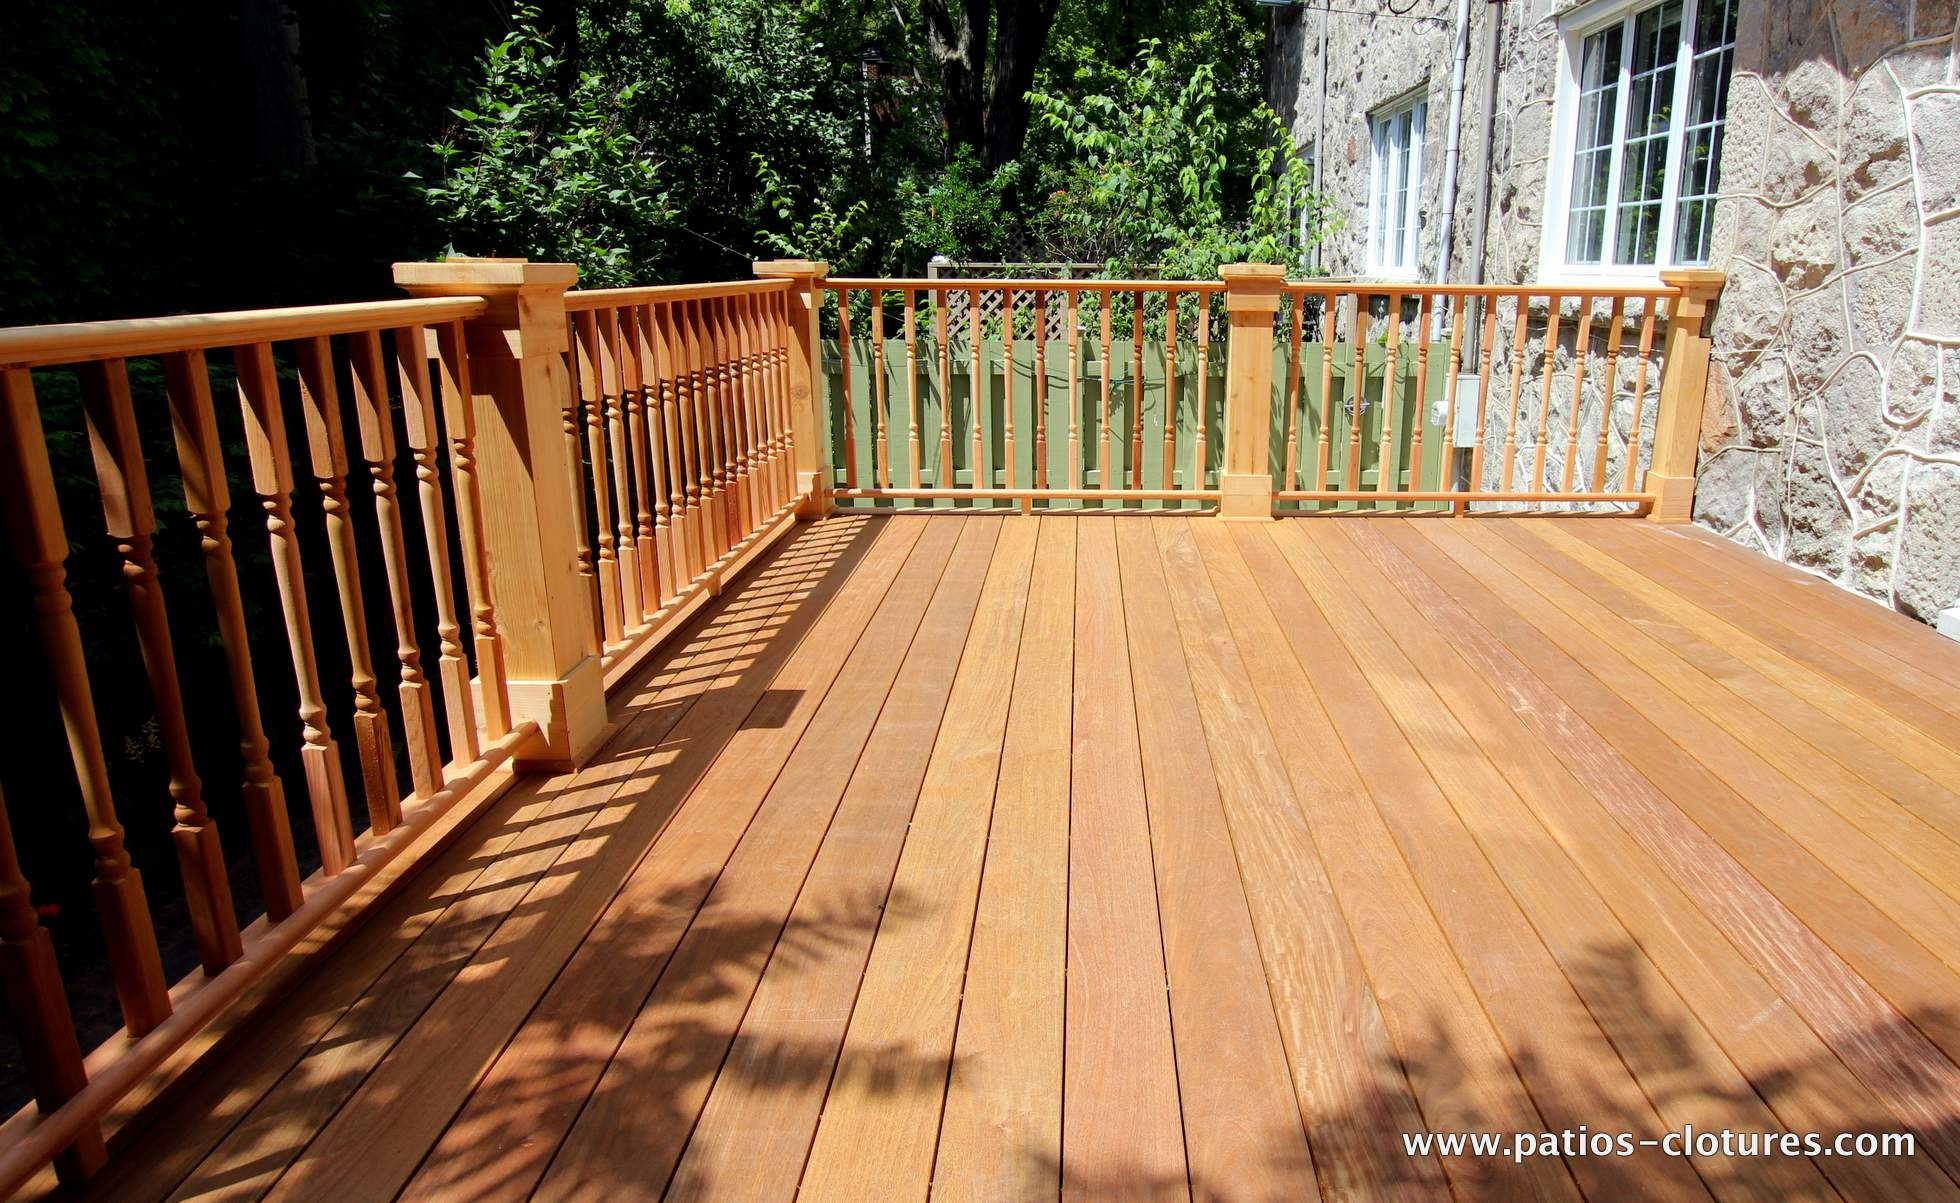 Deck with an Ipe wood floor and colonial style cedar railings. Patio Labadie.